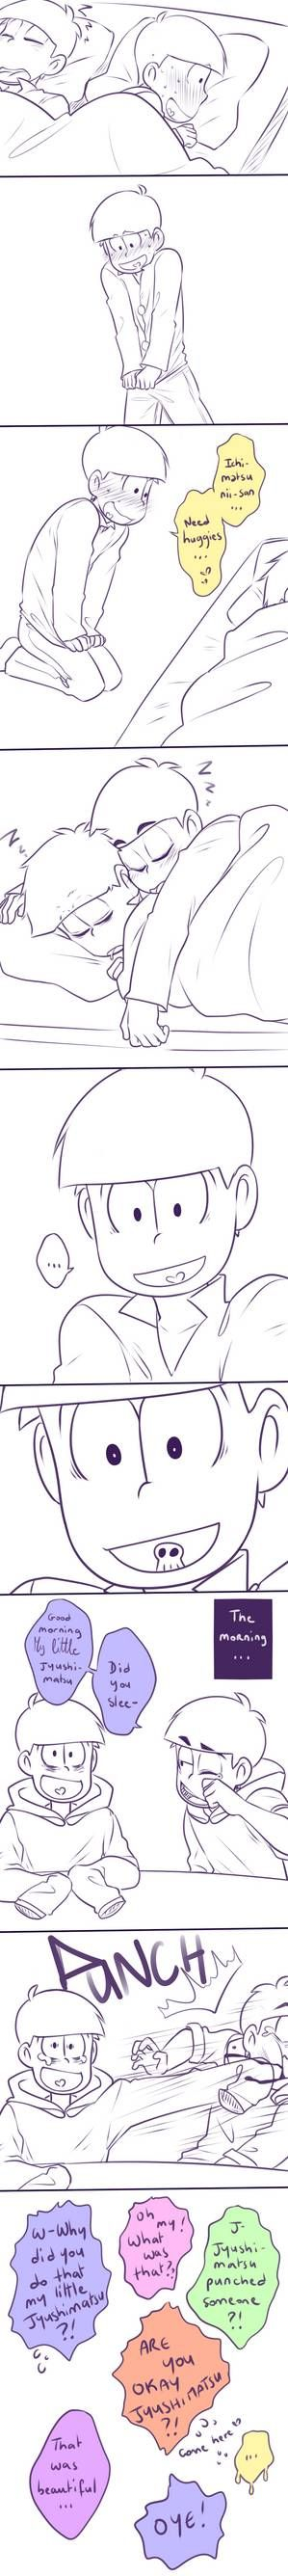 Jealous Jyushimatsu by Kyovan on DeviantArt